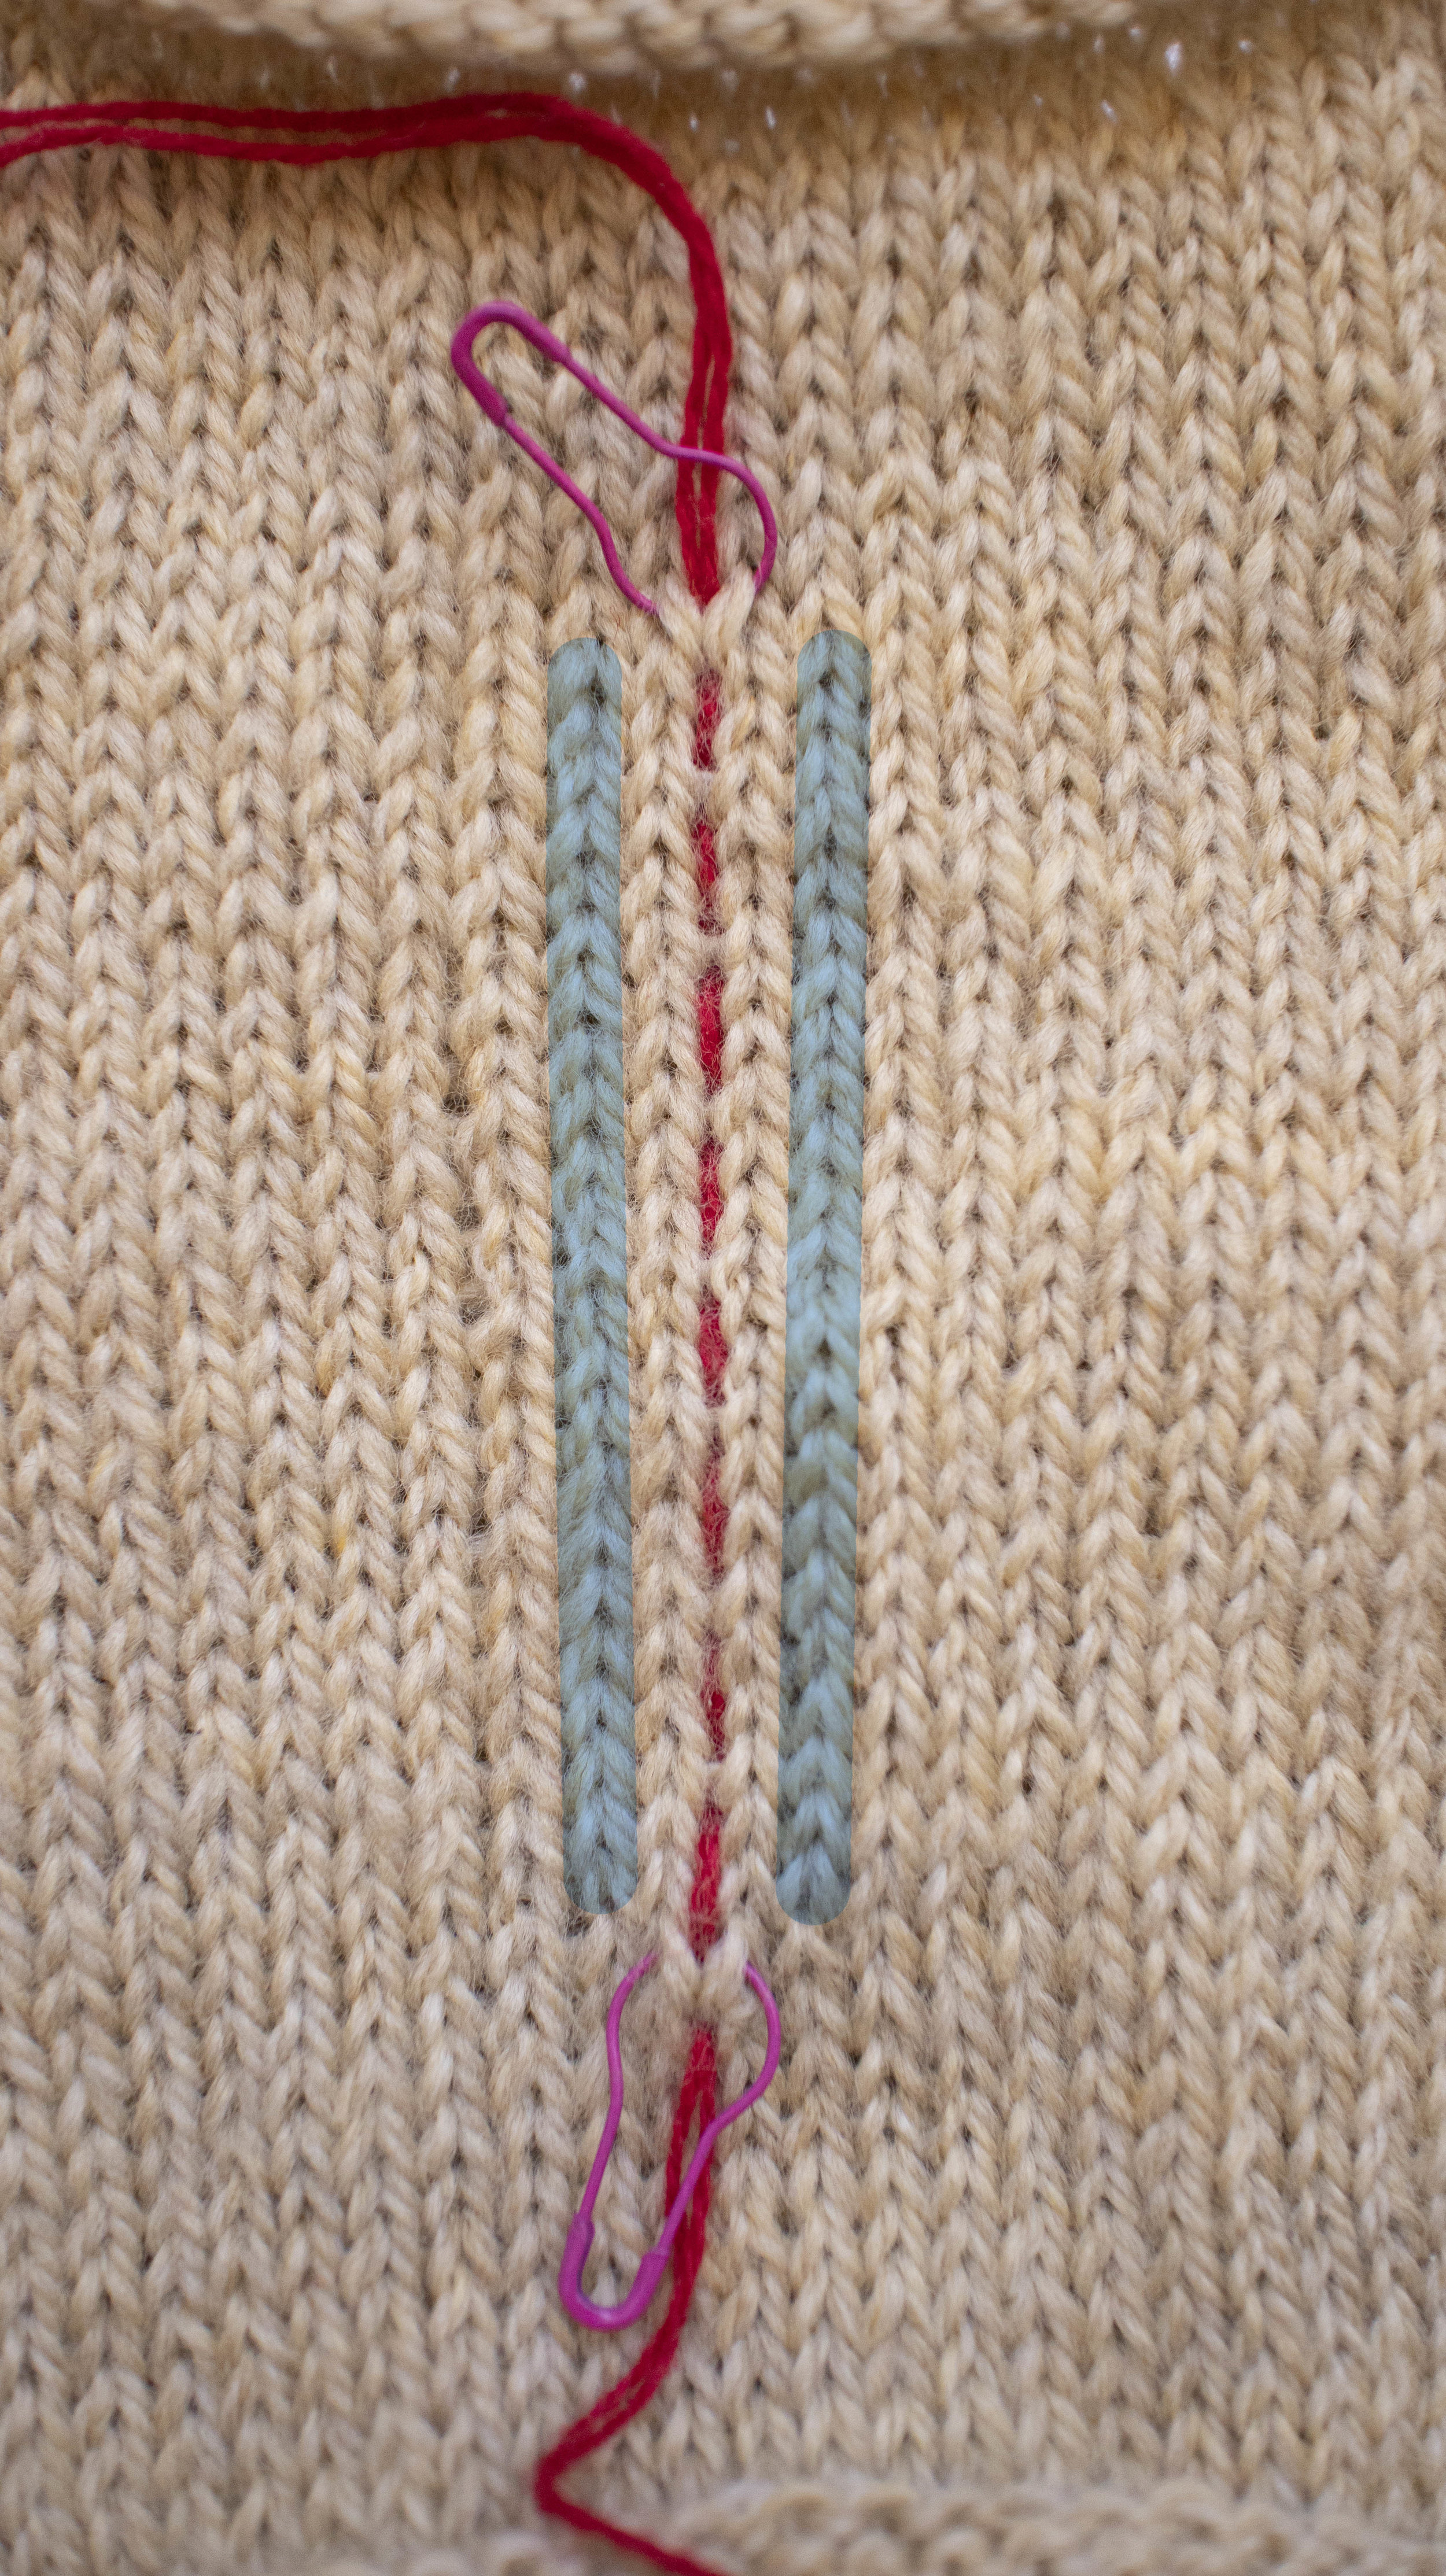 The blue stripes are the columns of stitches ( half a leg from two columns of stitches) that will be crocheted.